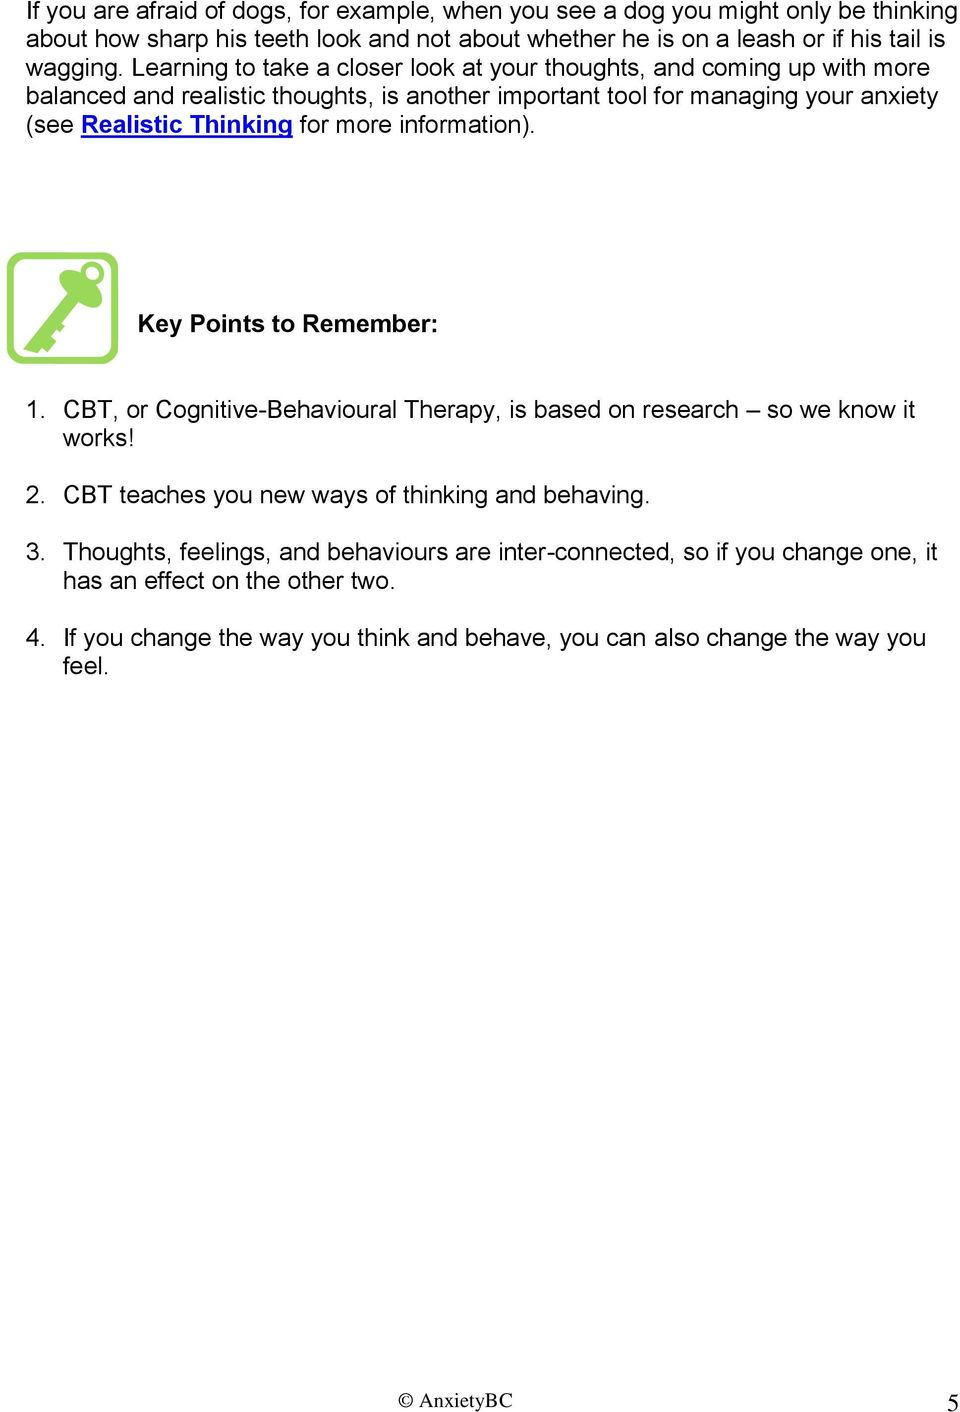 more information). Key Points to Remember: 1. CBT, or Cognitive-Behavioural Therapy, is based on research so we know it works! 2. CBT teaches you new ways of thinking and behaving. 3.